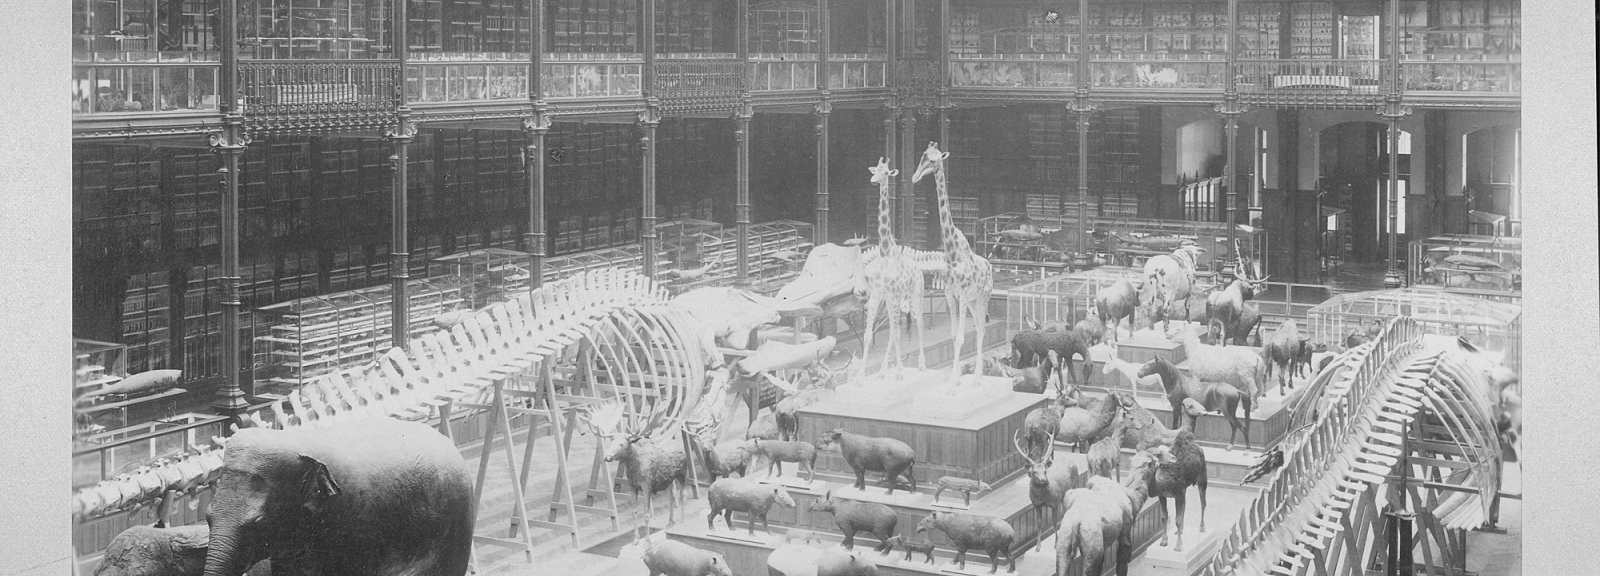 Galerie de Zoologie. View of the great hall, 1890 - Coll. of the Muséum national d'Histoire naturelle (National Museum of Natural History) © Pierre Petit